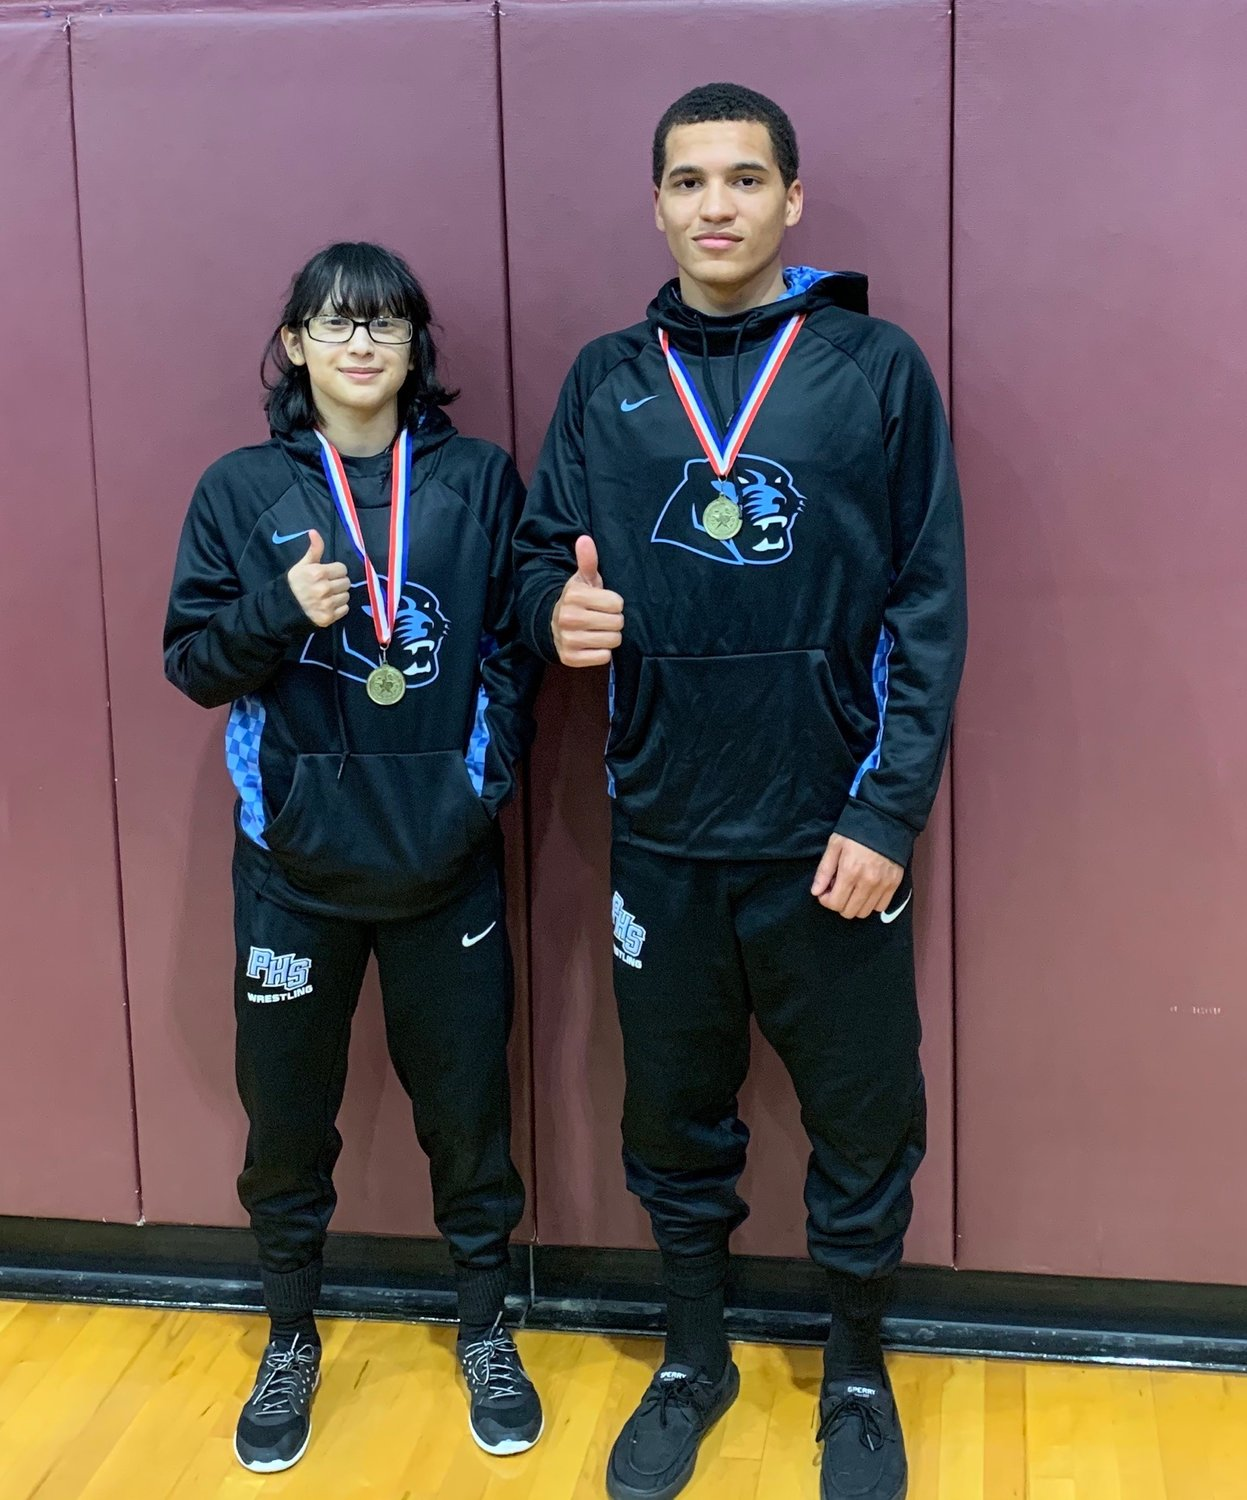 Paetow's Brittney Galindo and Josiah Bernhardt won district titles at the District 11-5A meet on Feb. 5.